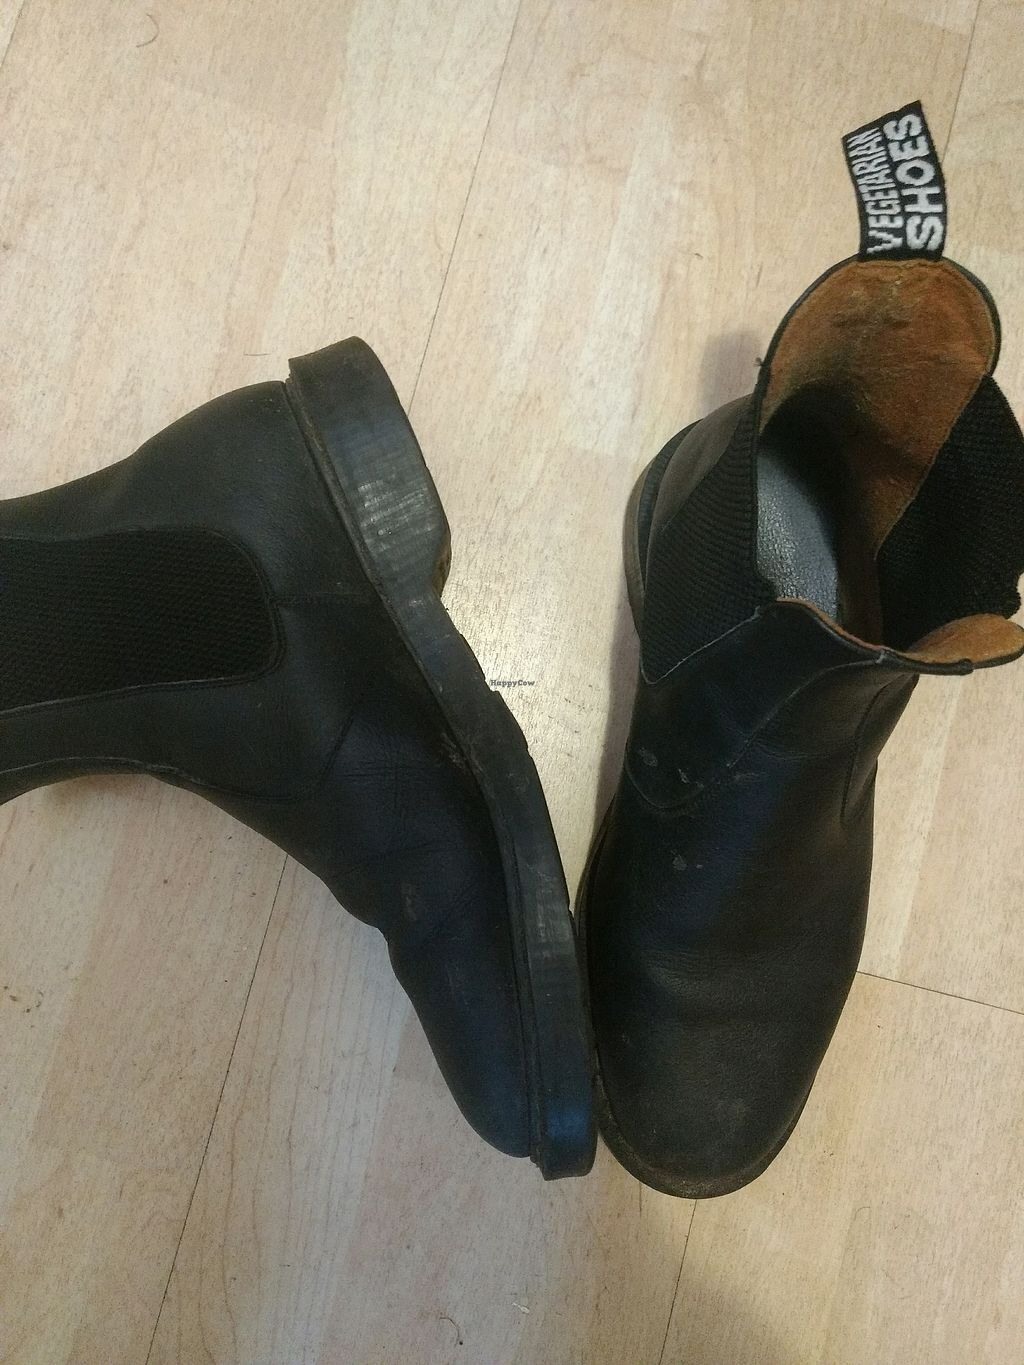 """Photo of Vegetarian Shoes  by <a href=""""/members/profile/craigmc"""">craigmc</a> <br/>year 3 <br/> January 28, 2018  - <a href='/contact/abuse/image/30114/351950'>Report</a>"""